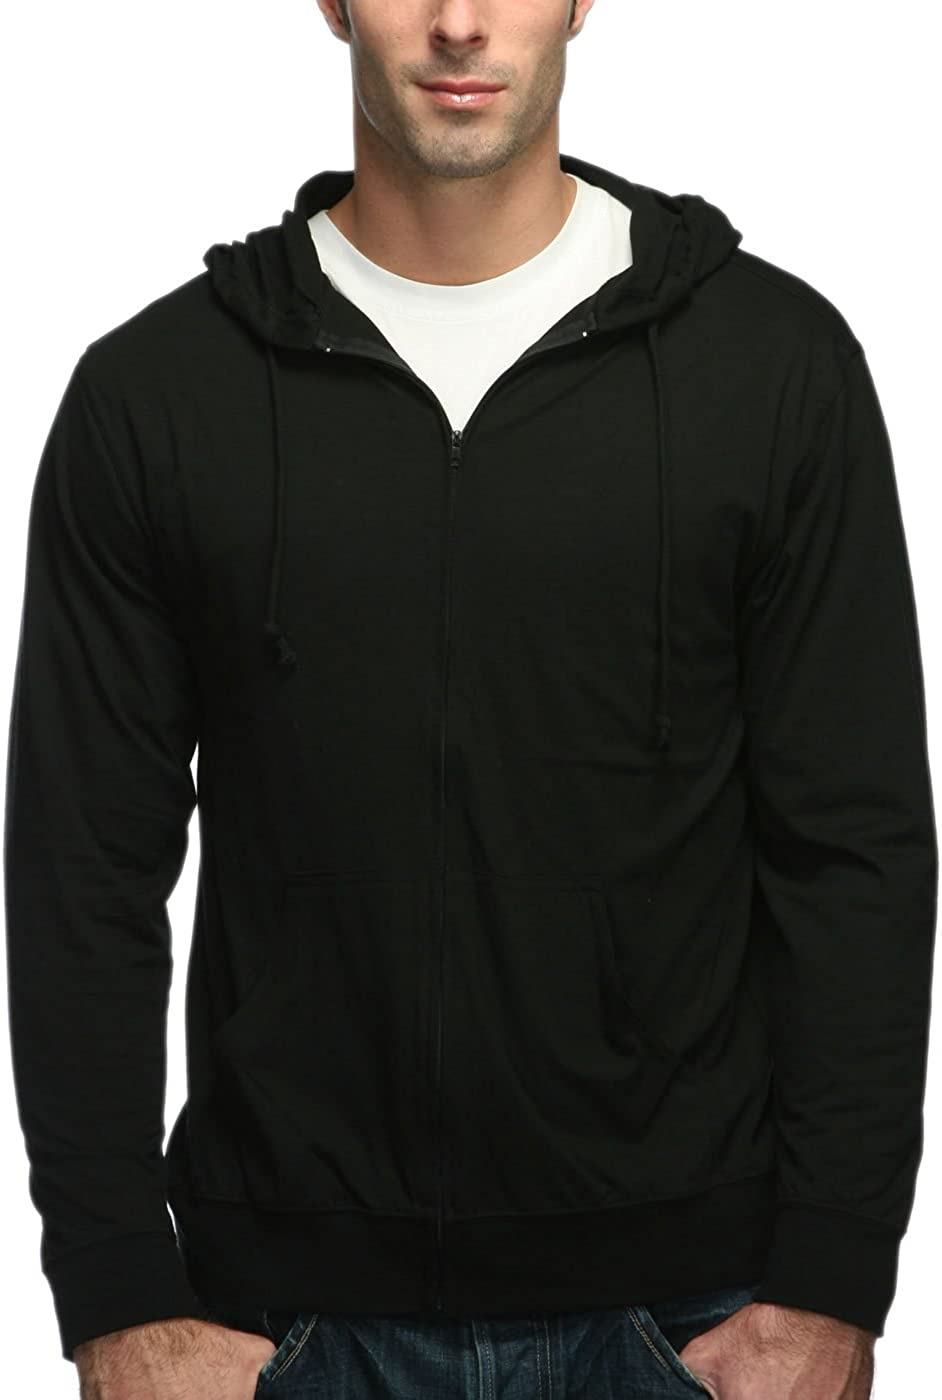 Max 84% OFF Cottonhood Long Sleeve T-Shirt Zip Our shop OFFers the best service Hoodie